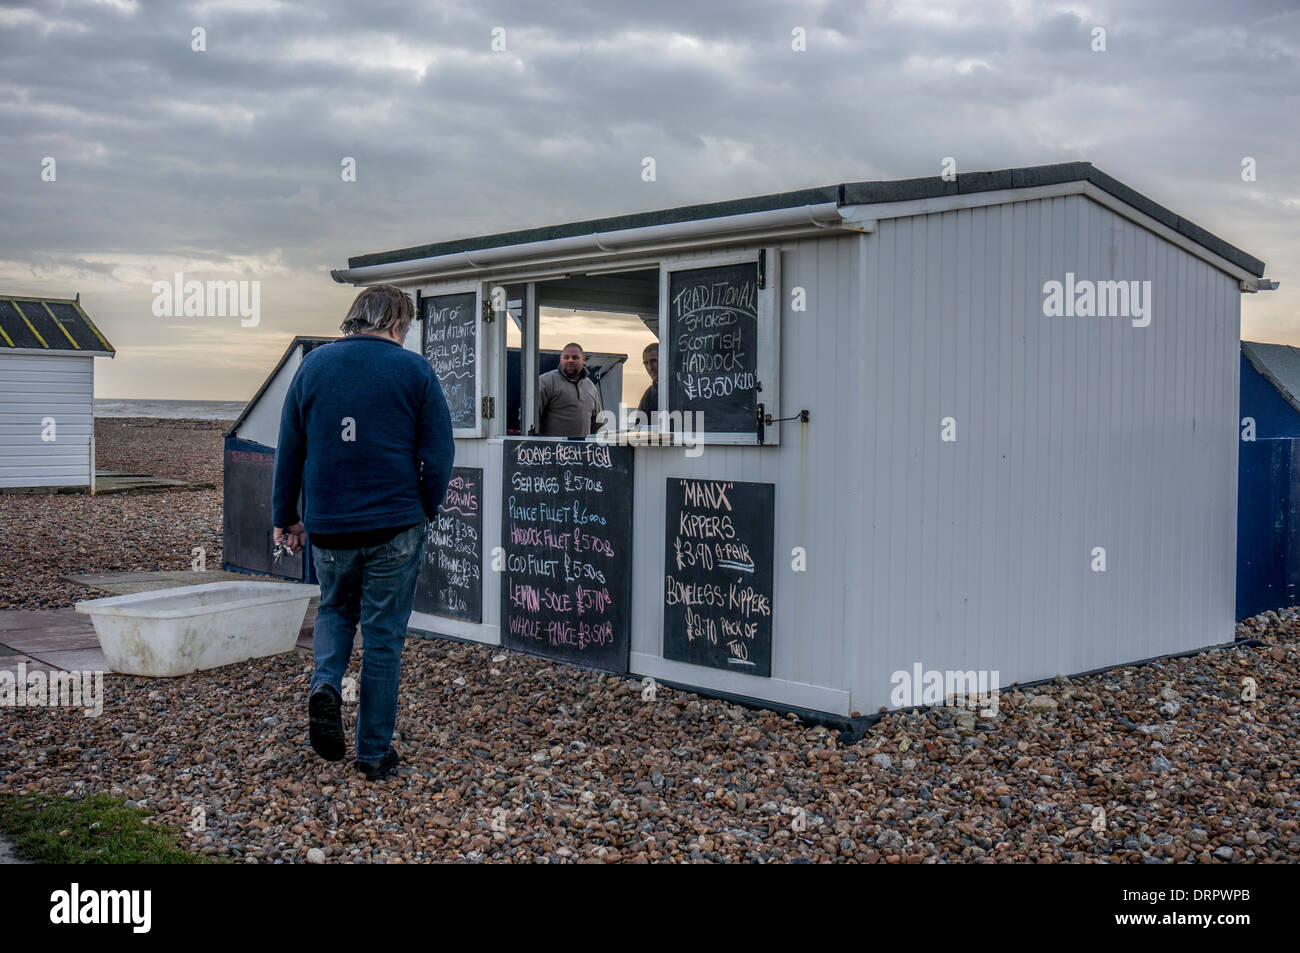 Man going to buy locally caught seafood from seller's hut on Goring-by-Sea pebble beach, near Worthing, West Sussex, England, UK. - Stock Image